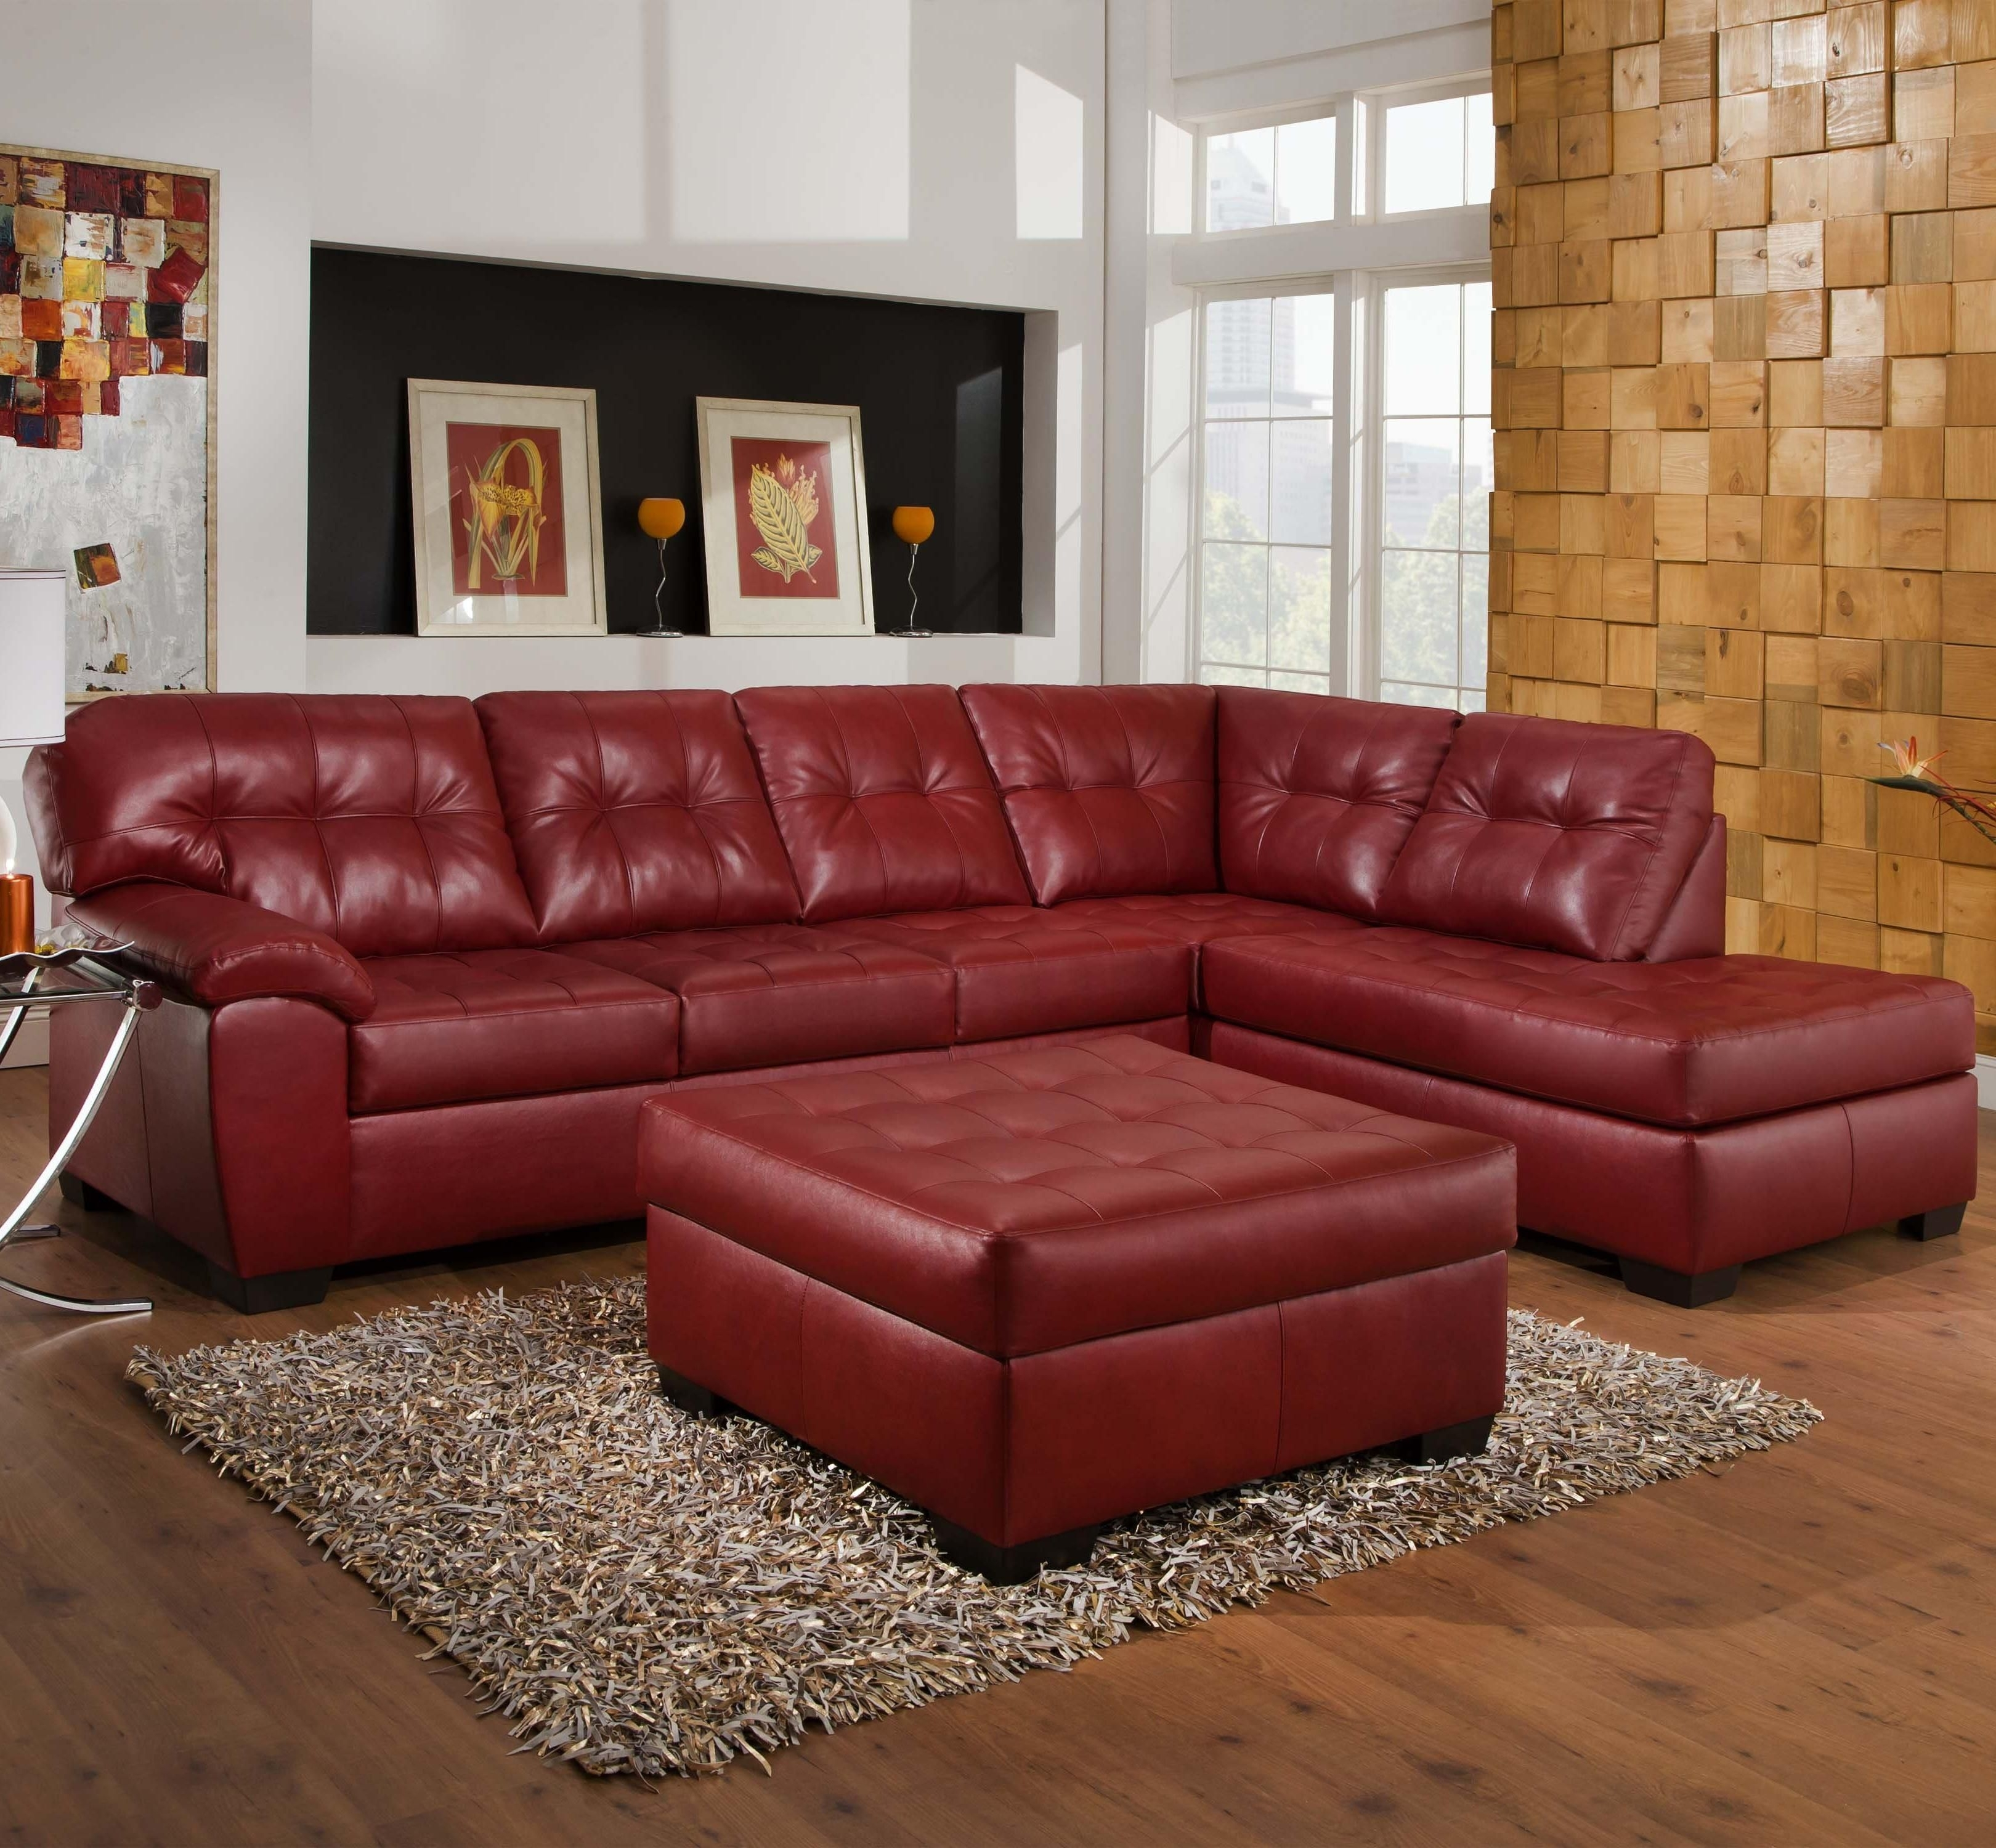 9569 2 Piece Sectional With Tufted Seats & Backsimmons for Memphis Tn Sectional Sofas (Image 3 of 10)